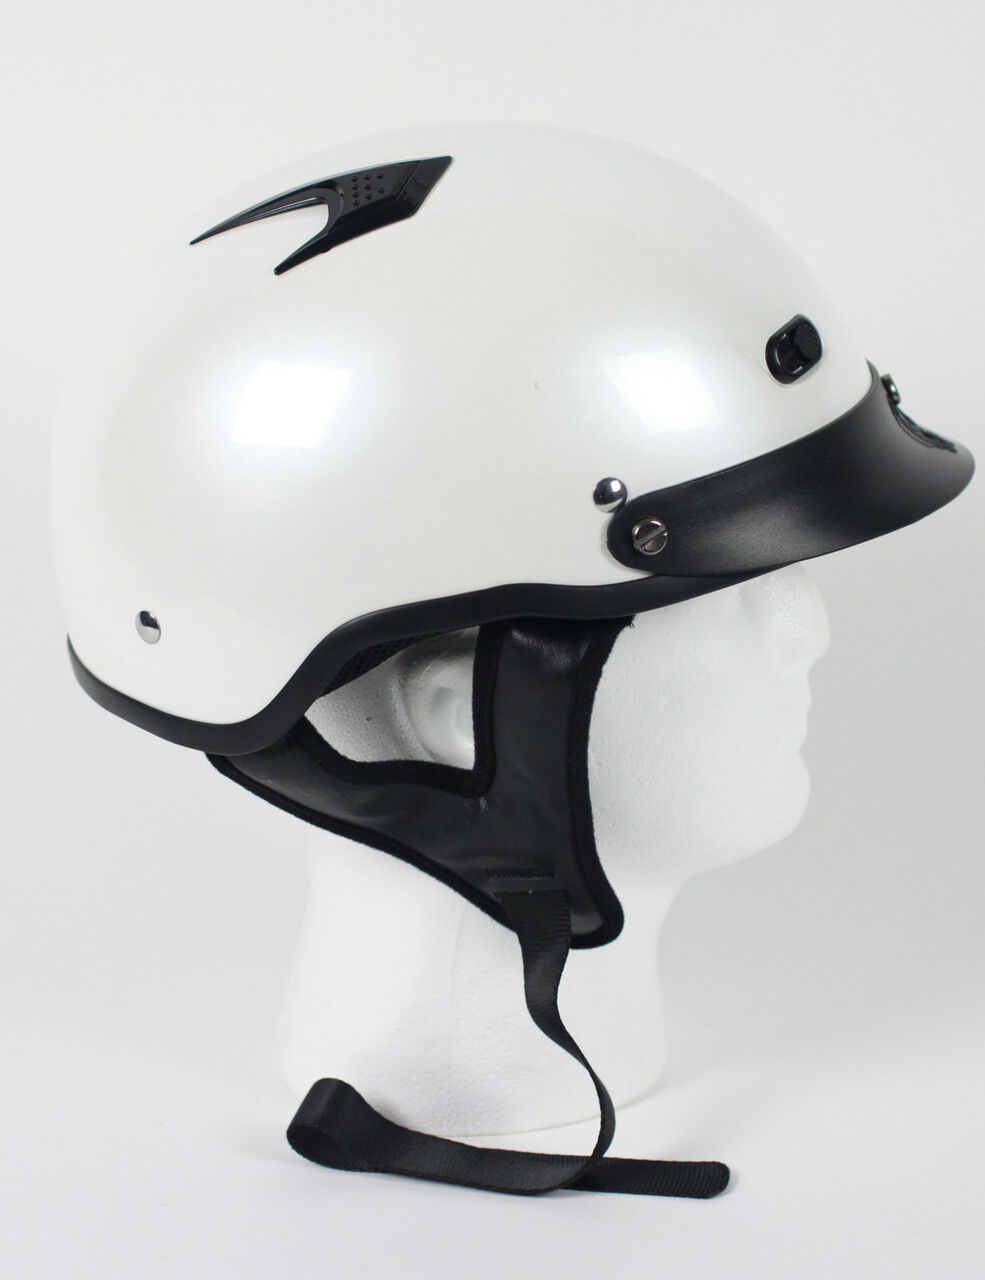 D.O.T  VENTED PEARL WHITE MOTORCYCLE HALF HELMET BEANIE HELMETS SHORTY LIGHTER  low 40% price